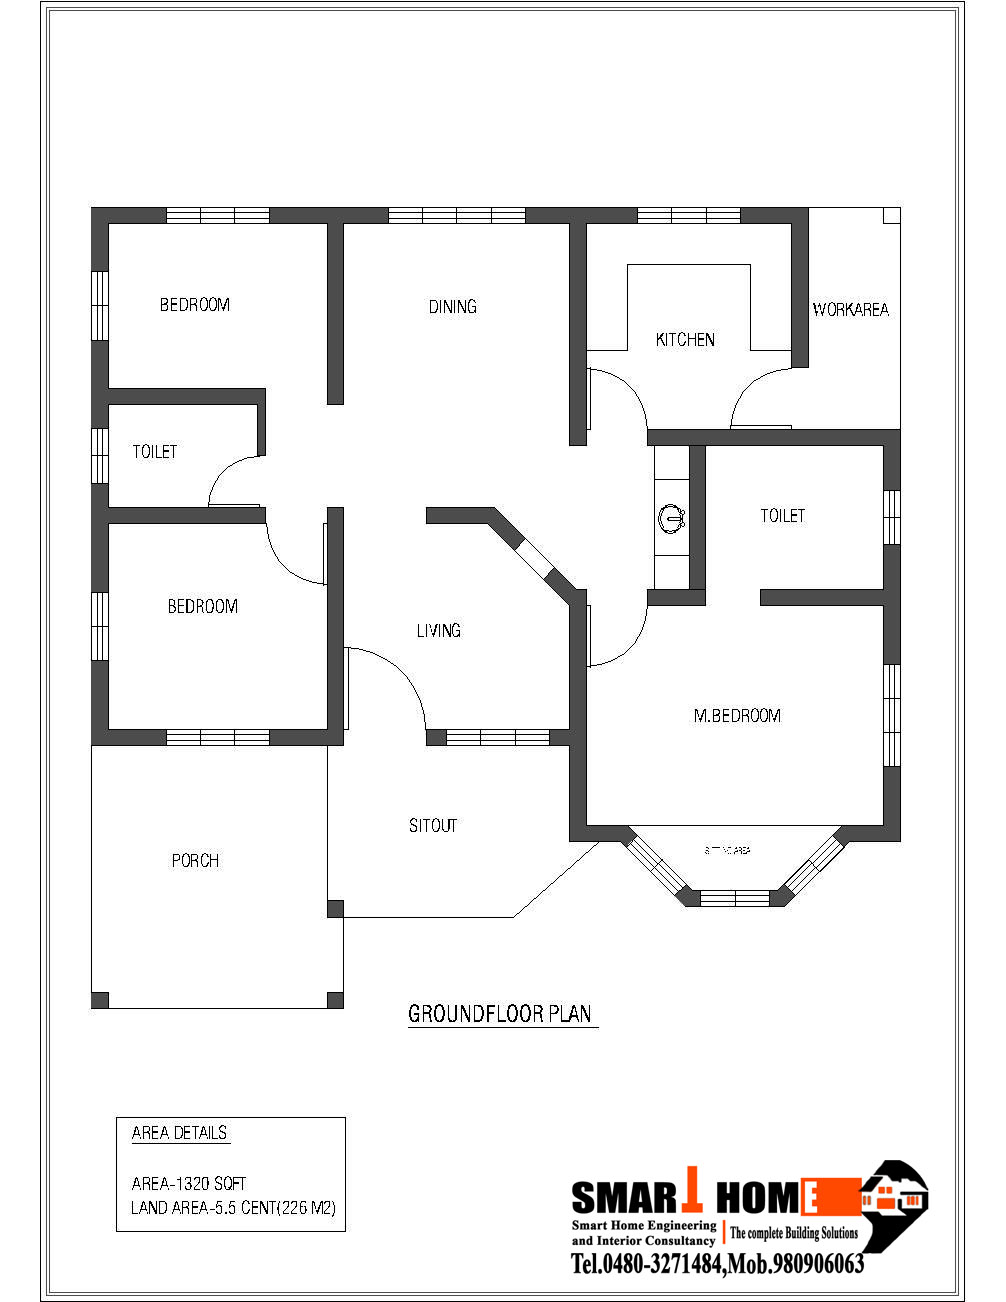 House photos and plans may 2012 for Floor plans for my home